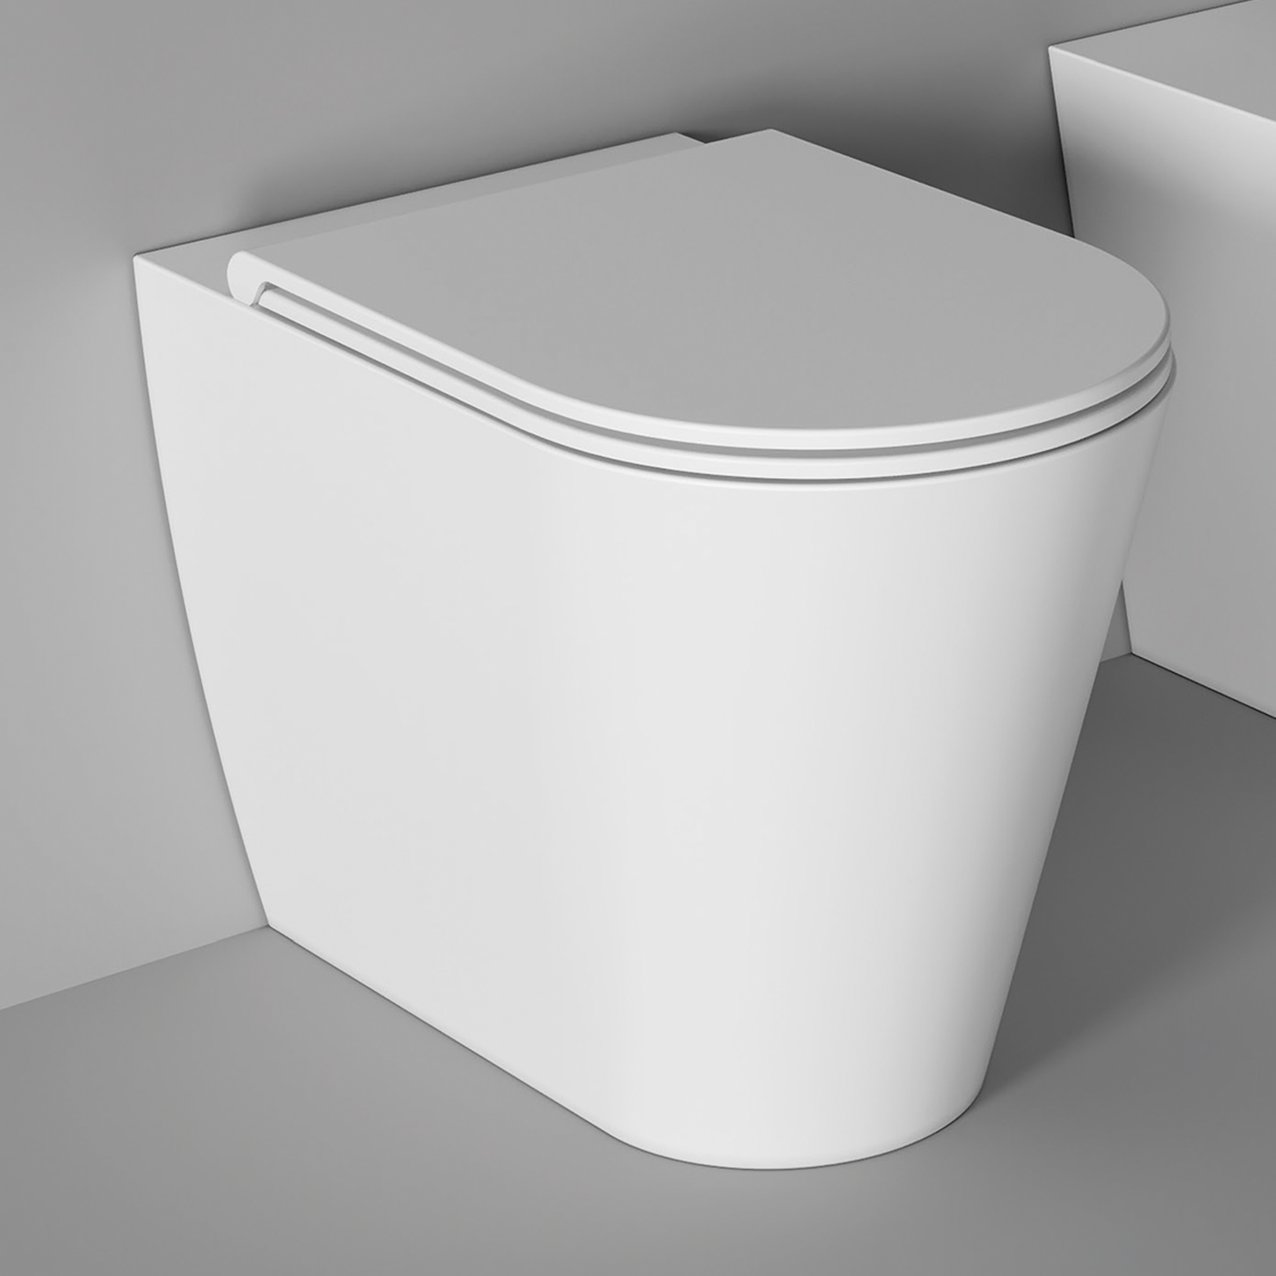 WC Hide Round back to wall